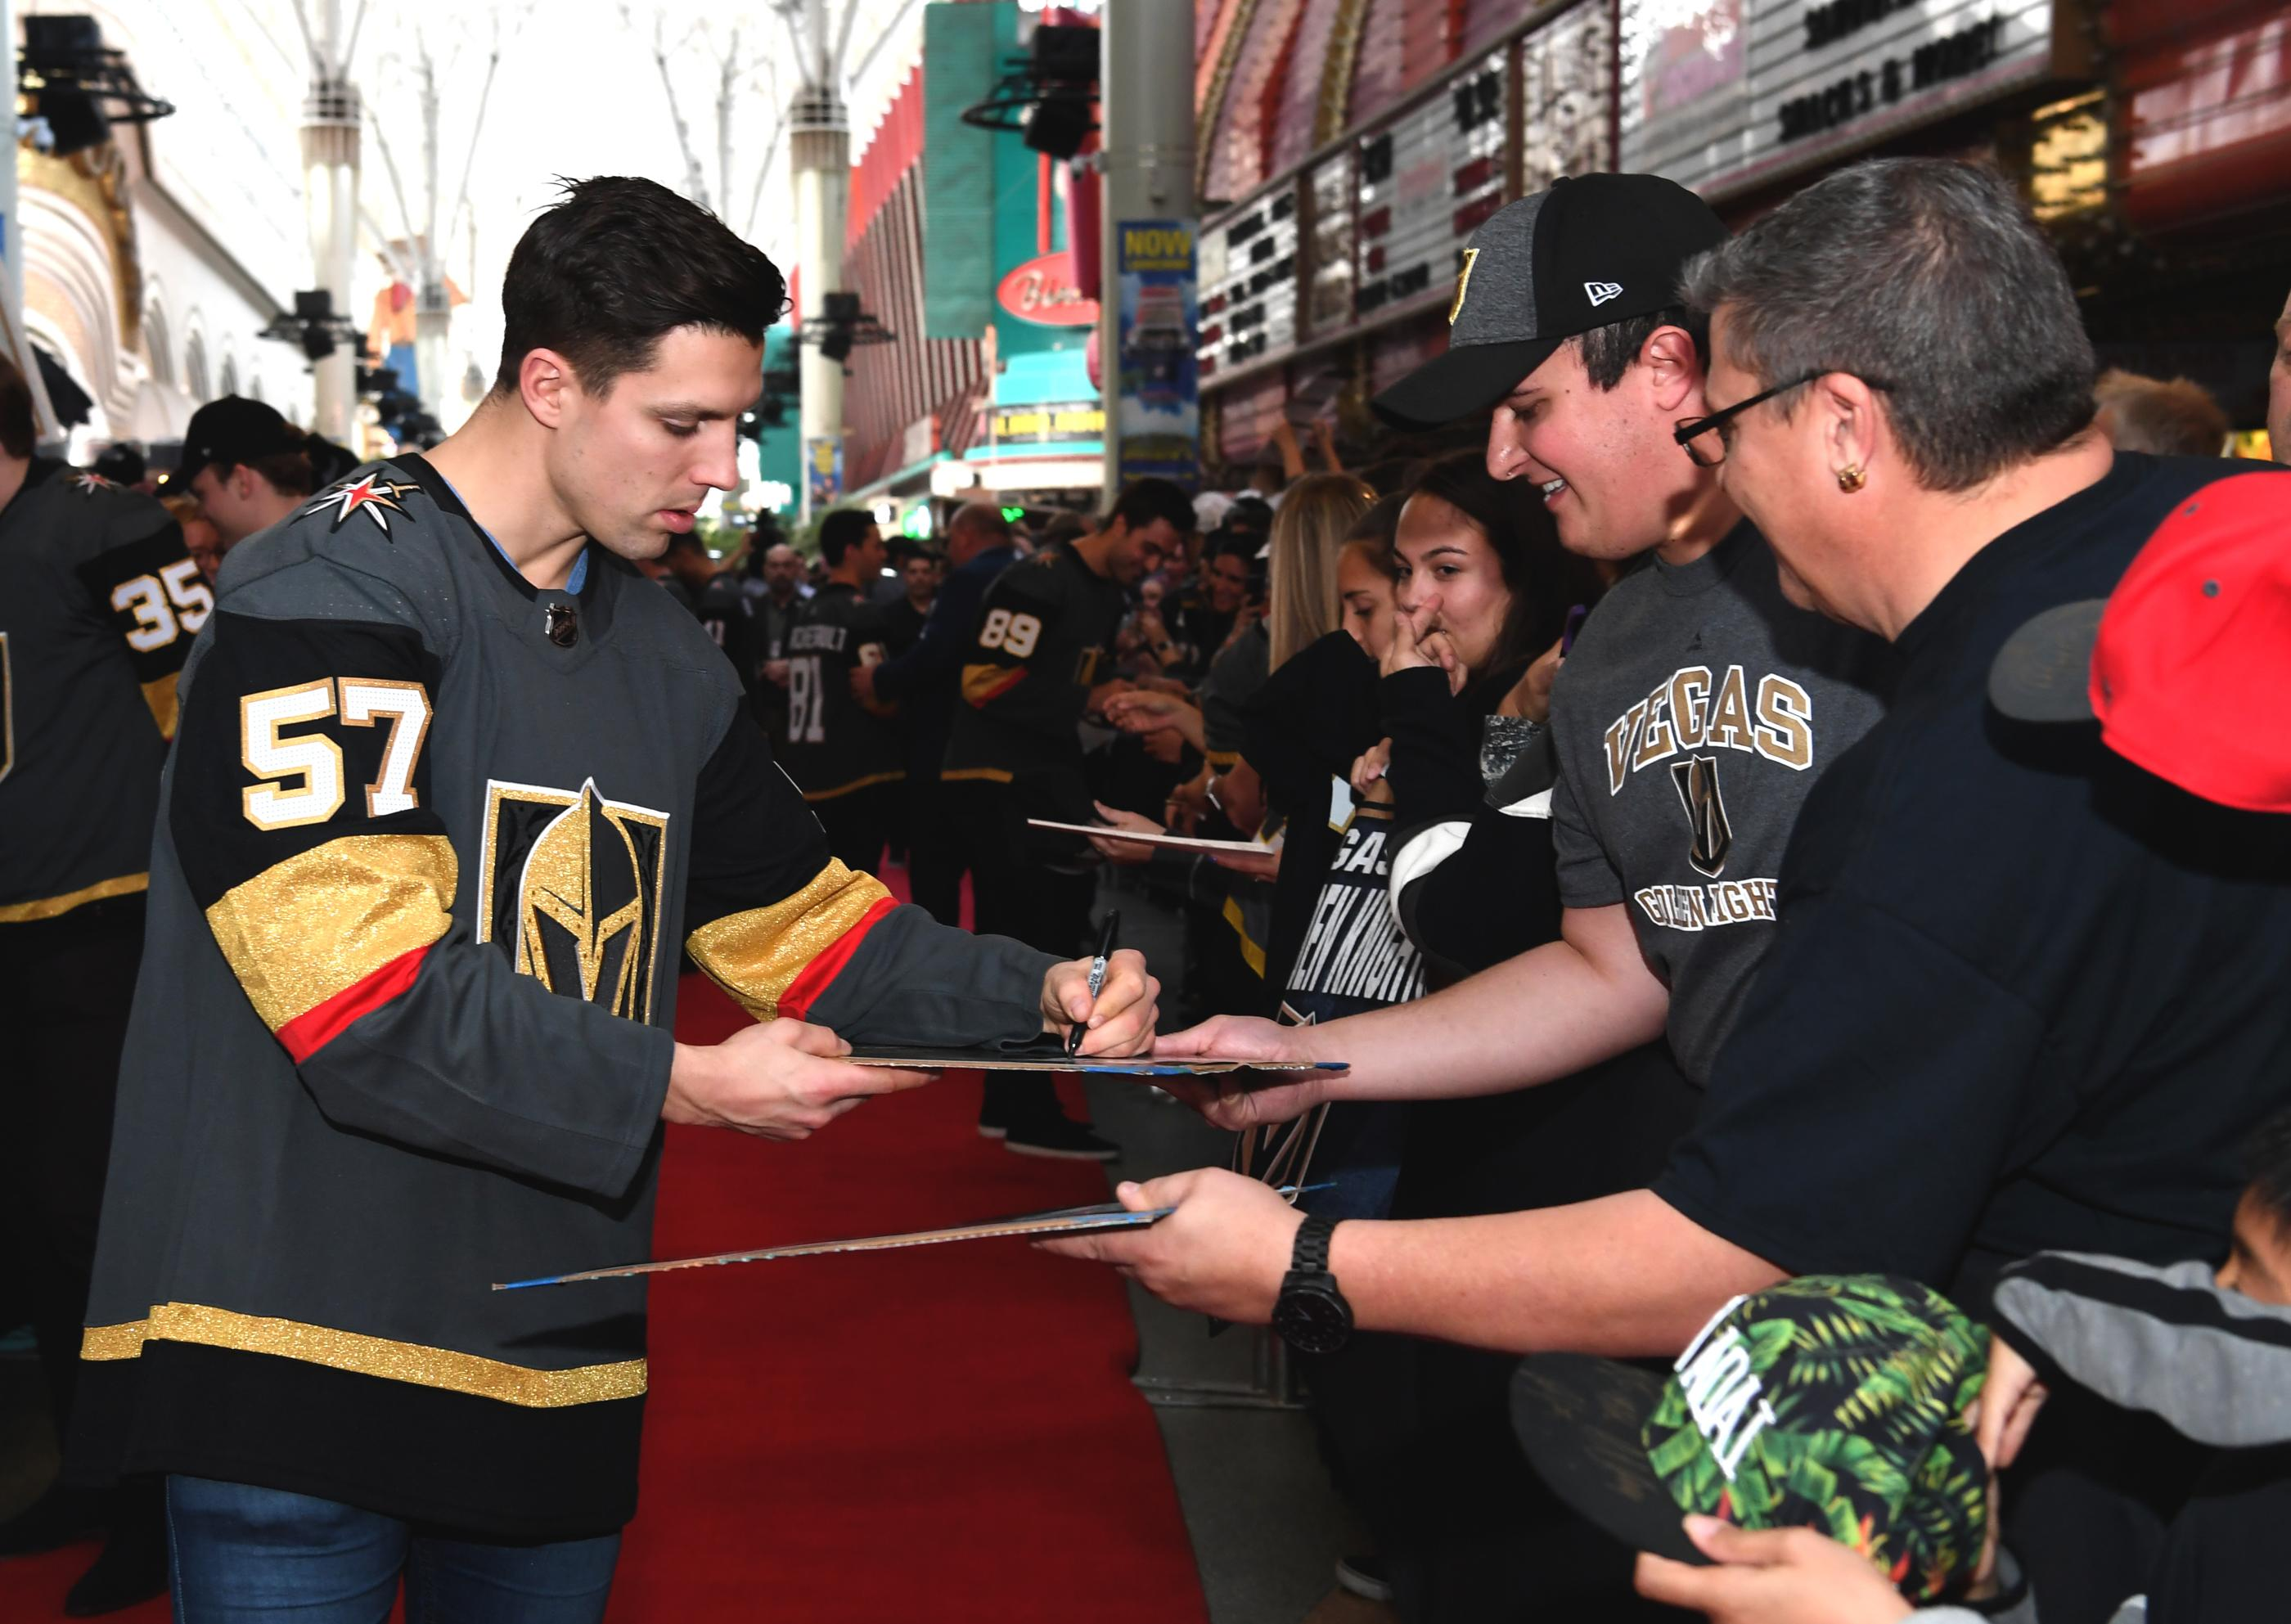 The Golden Knights host a Fan Fest with the D Las Vegas and Fremont Street Experience. Las Vegas Golden Knights player David Perron autographs his way down the red carpet at Fremont Street Experience. Sunday, January 14, 2017. CREDIT: Glenn Pinkerton/Las Vegas News Bureau